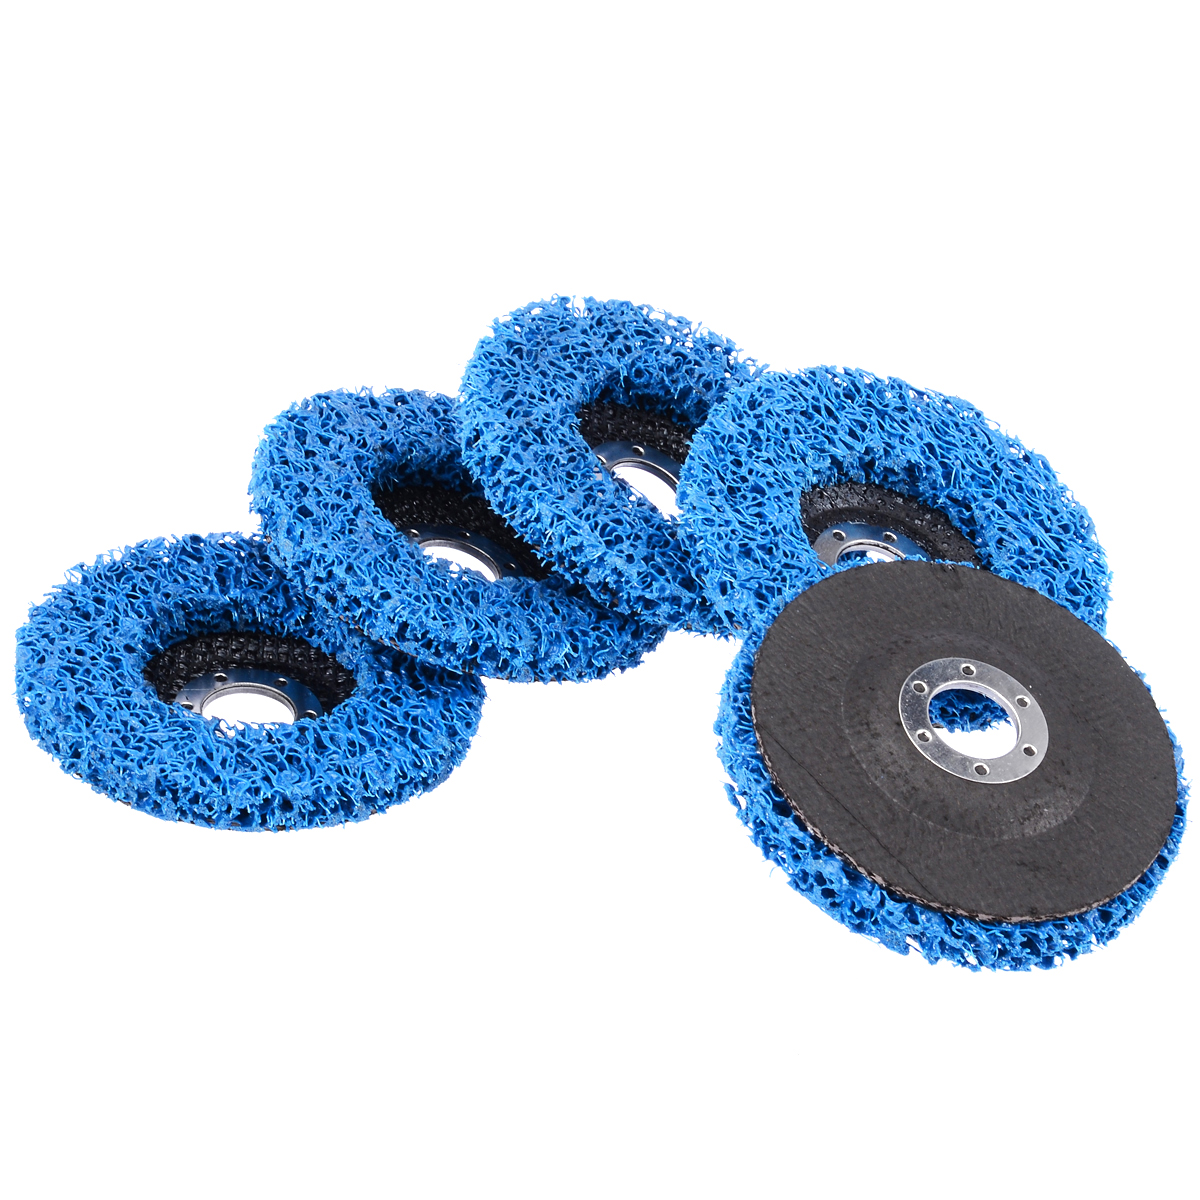 5pcs Abrasive Tools 110mm Poly Strip Wheels Paint Rust Removal Clean Angle Grinder Discs Blue цены